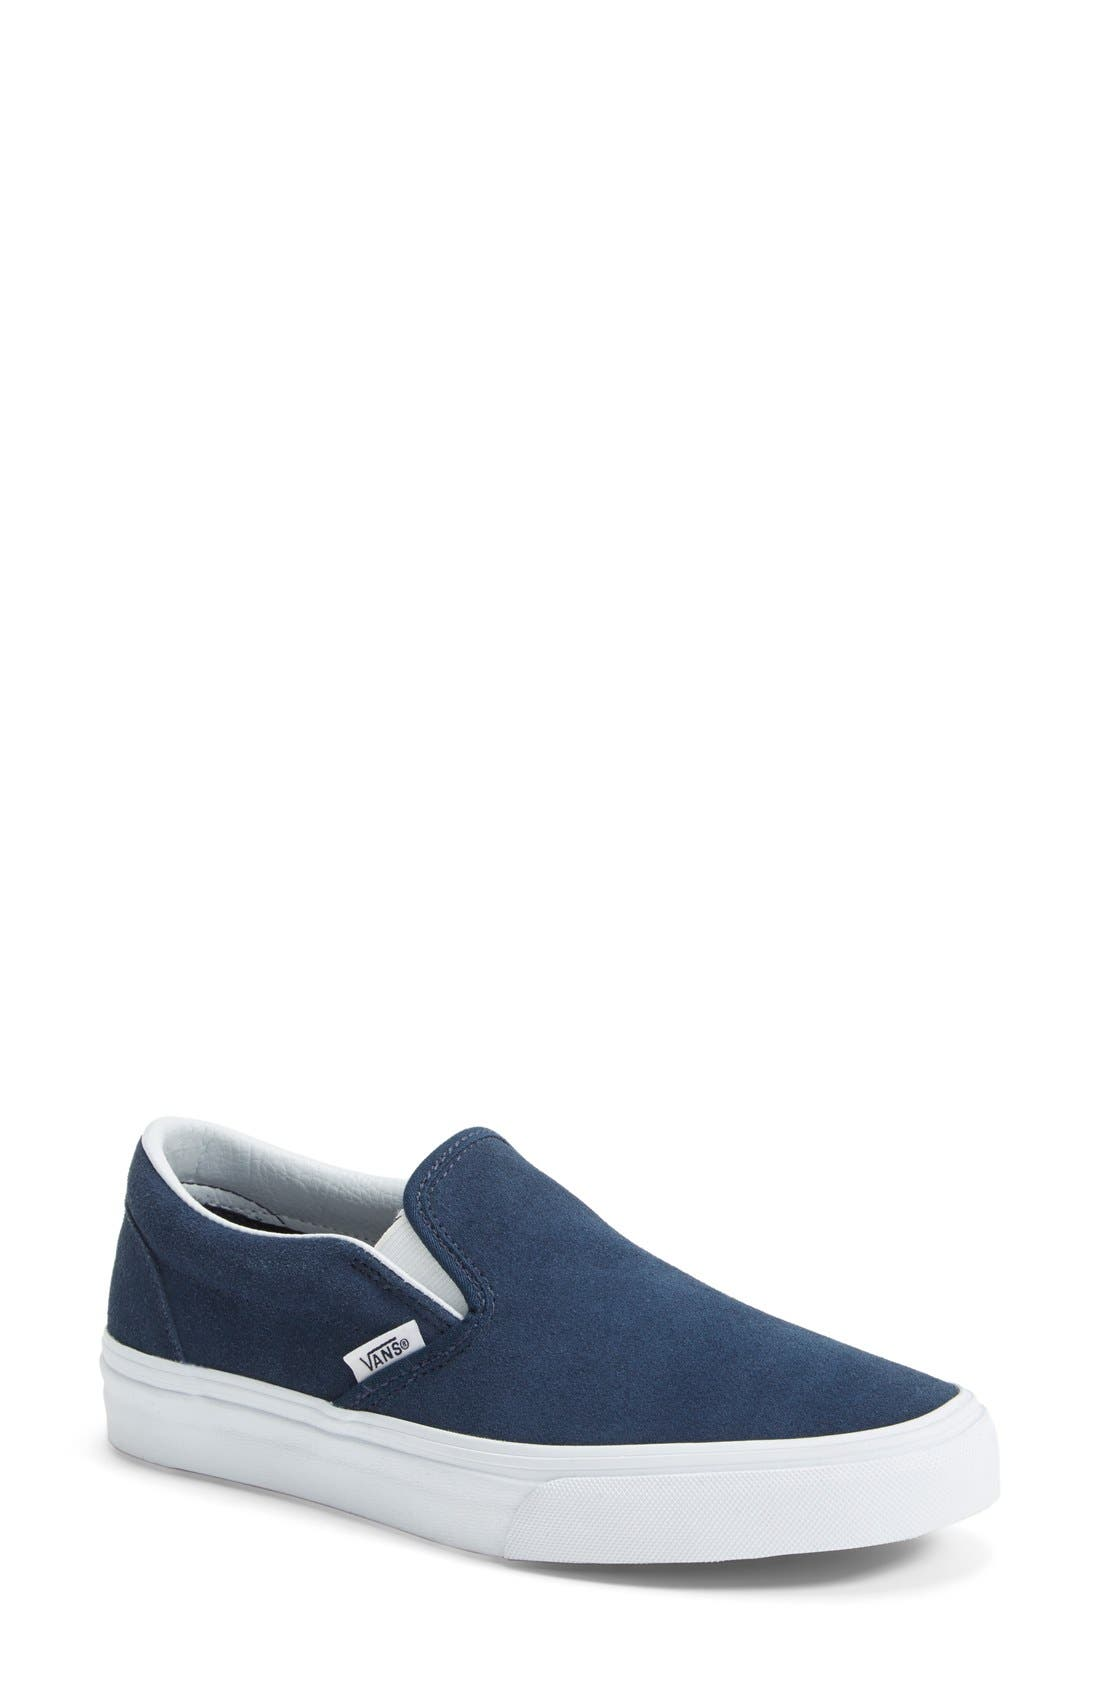 Main Image - Vans Suede Slip-On Sneaker (Women)